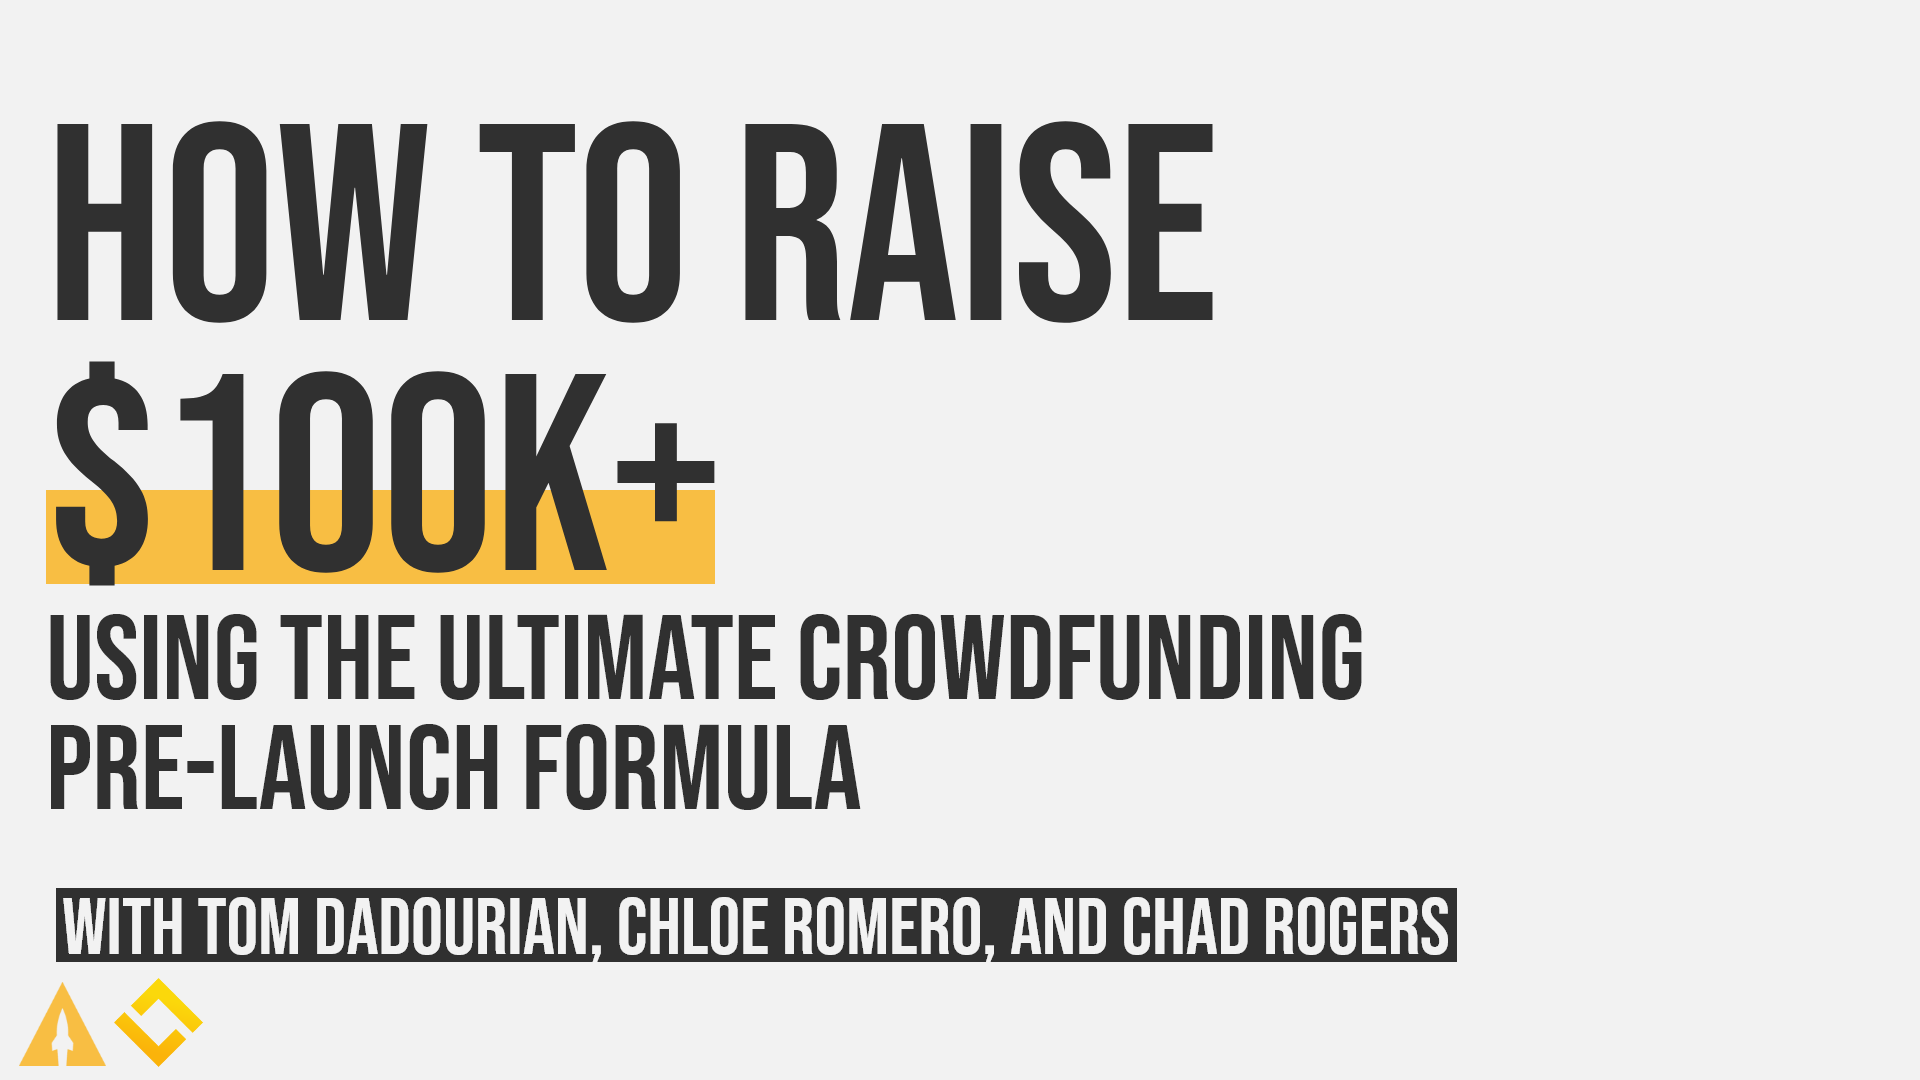 How to Raise $100k + With the Ultimate Crowdfunding Pre-Launch Formula